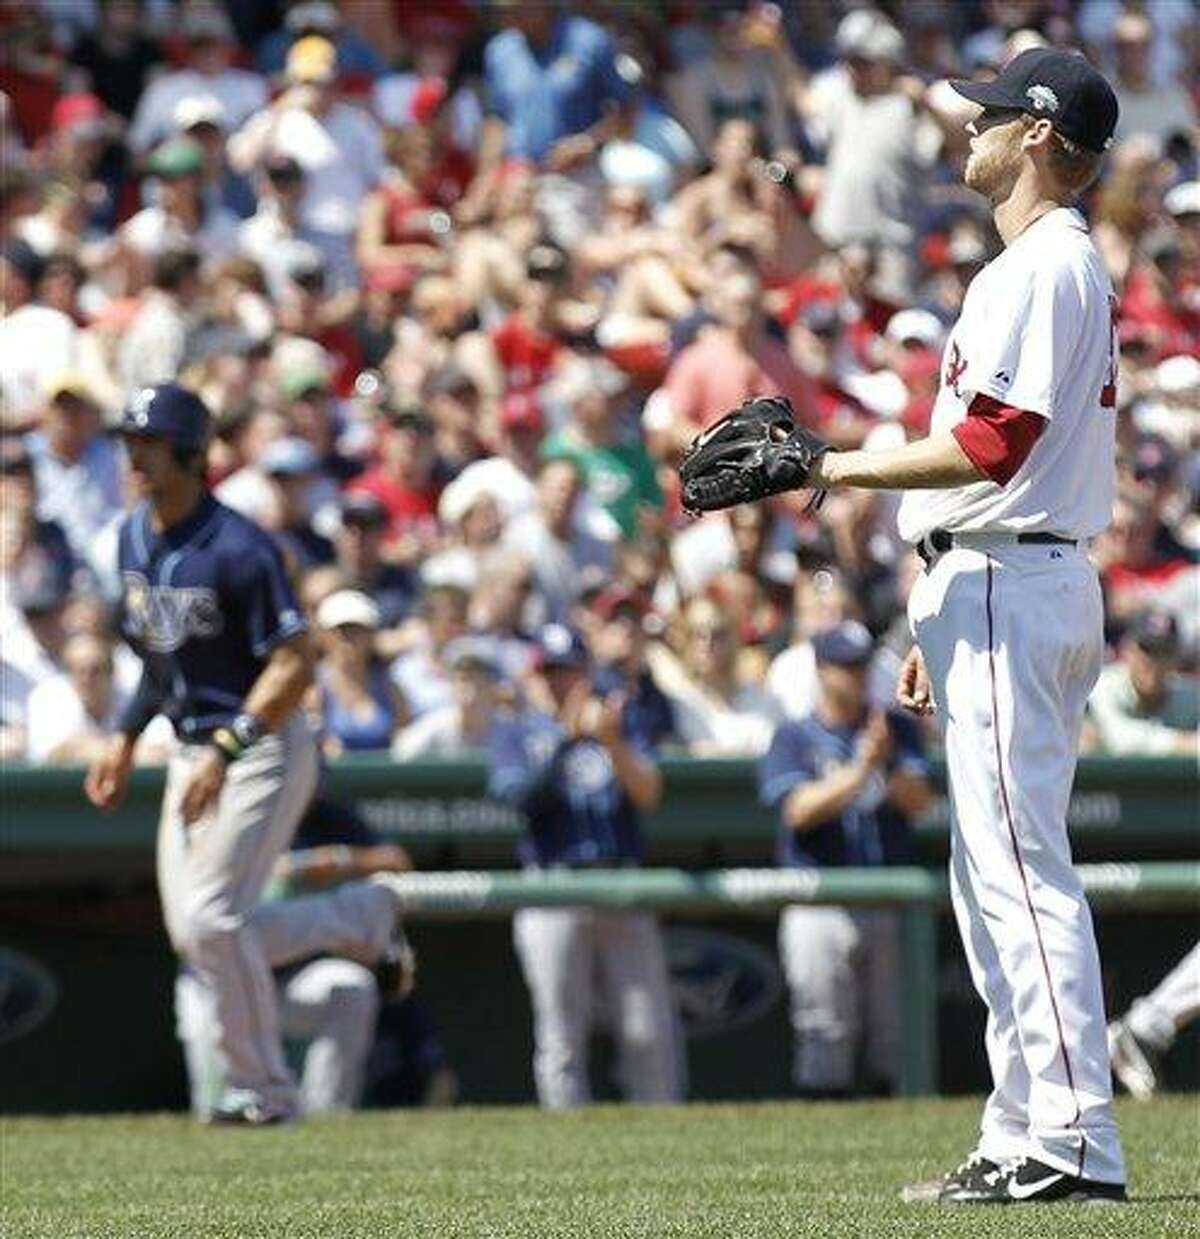 Boston Red Sox starting pitcher Daniel Bard waits to get the ball back as Tampa Bay Rays' Sean Rodriguez, left, walks home to score the only run of the game during the seventh inning of Tampa Bay's 1-0 win in a baseball game at Fenway Park in Boston Monday, April 16, 2012. (AP Photo/Winslow Townson)